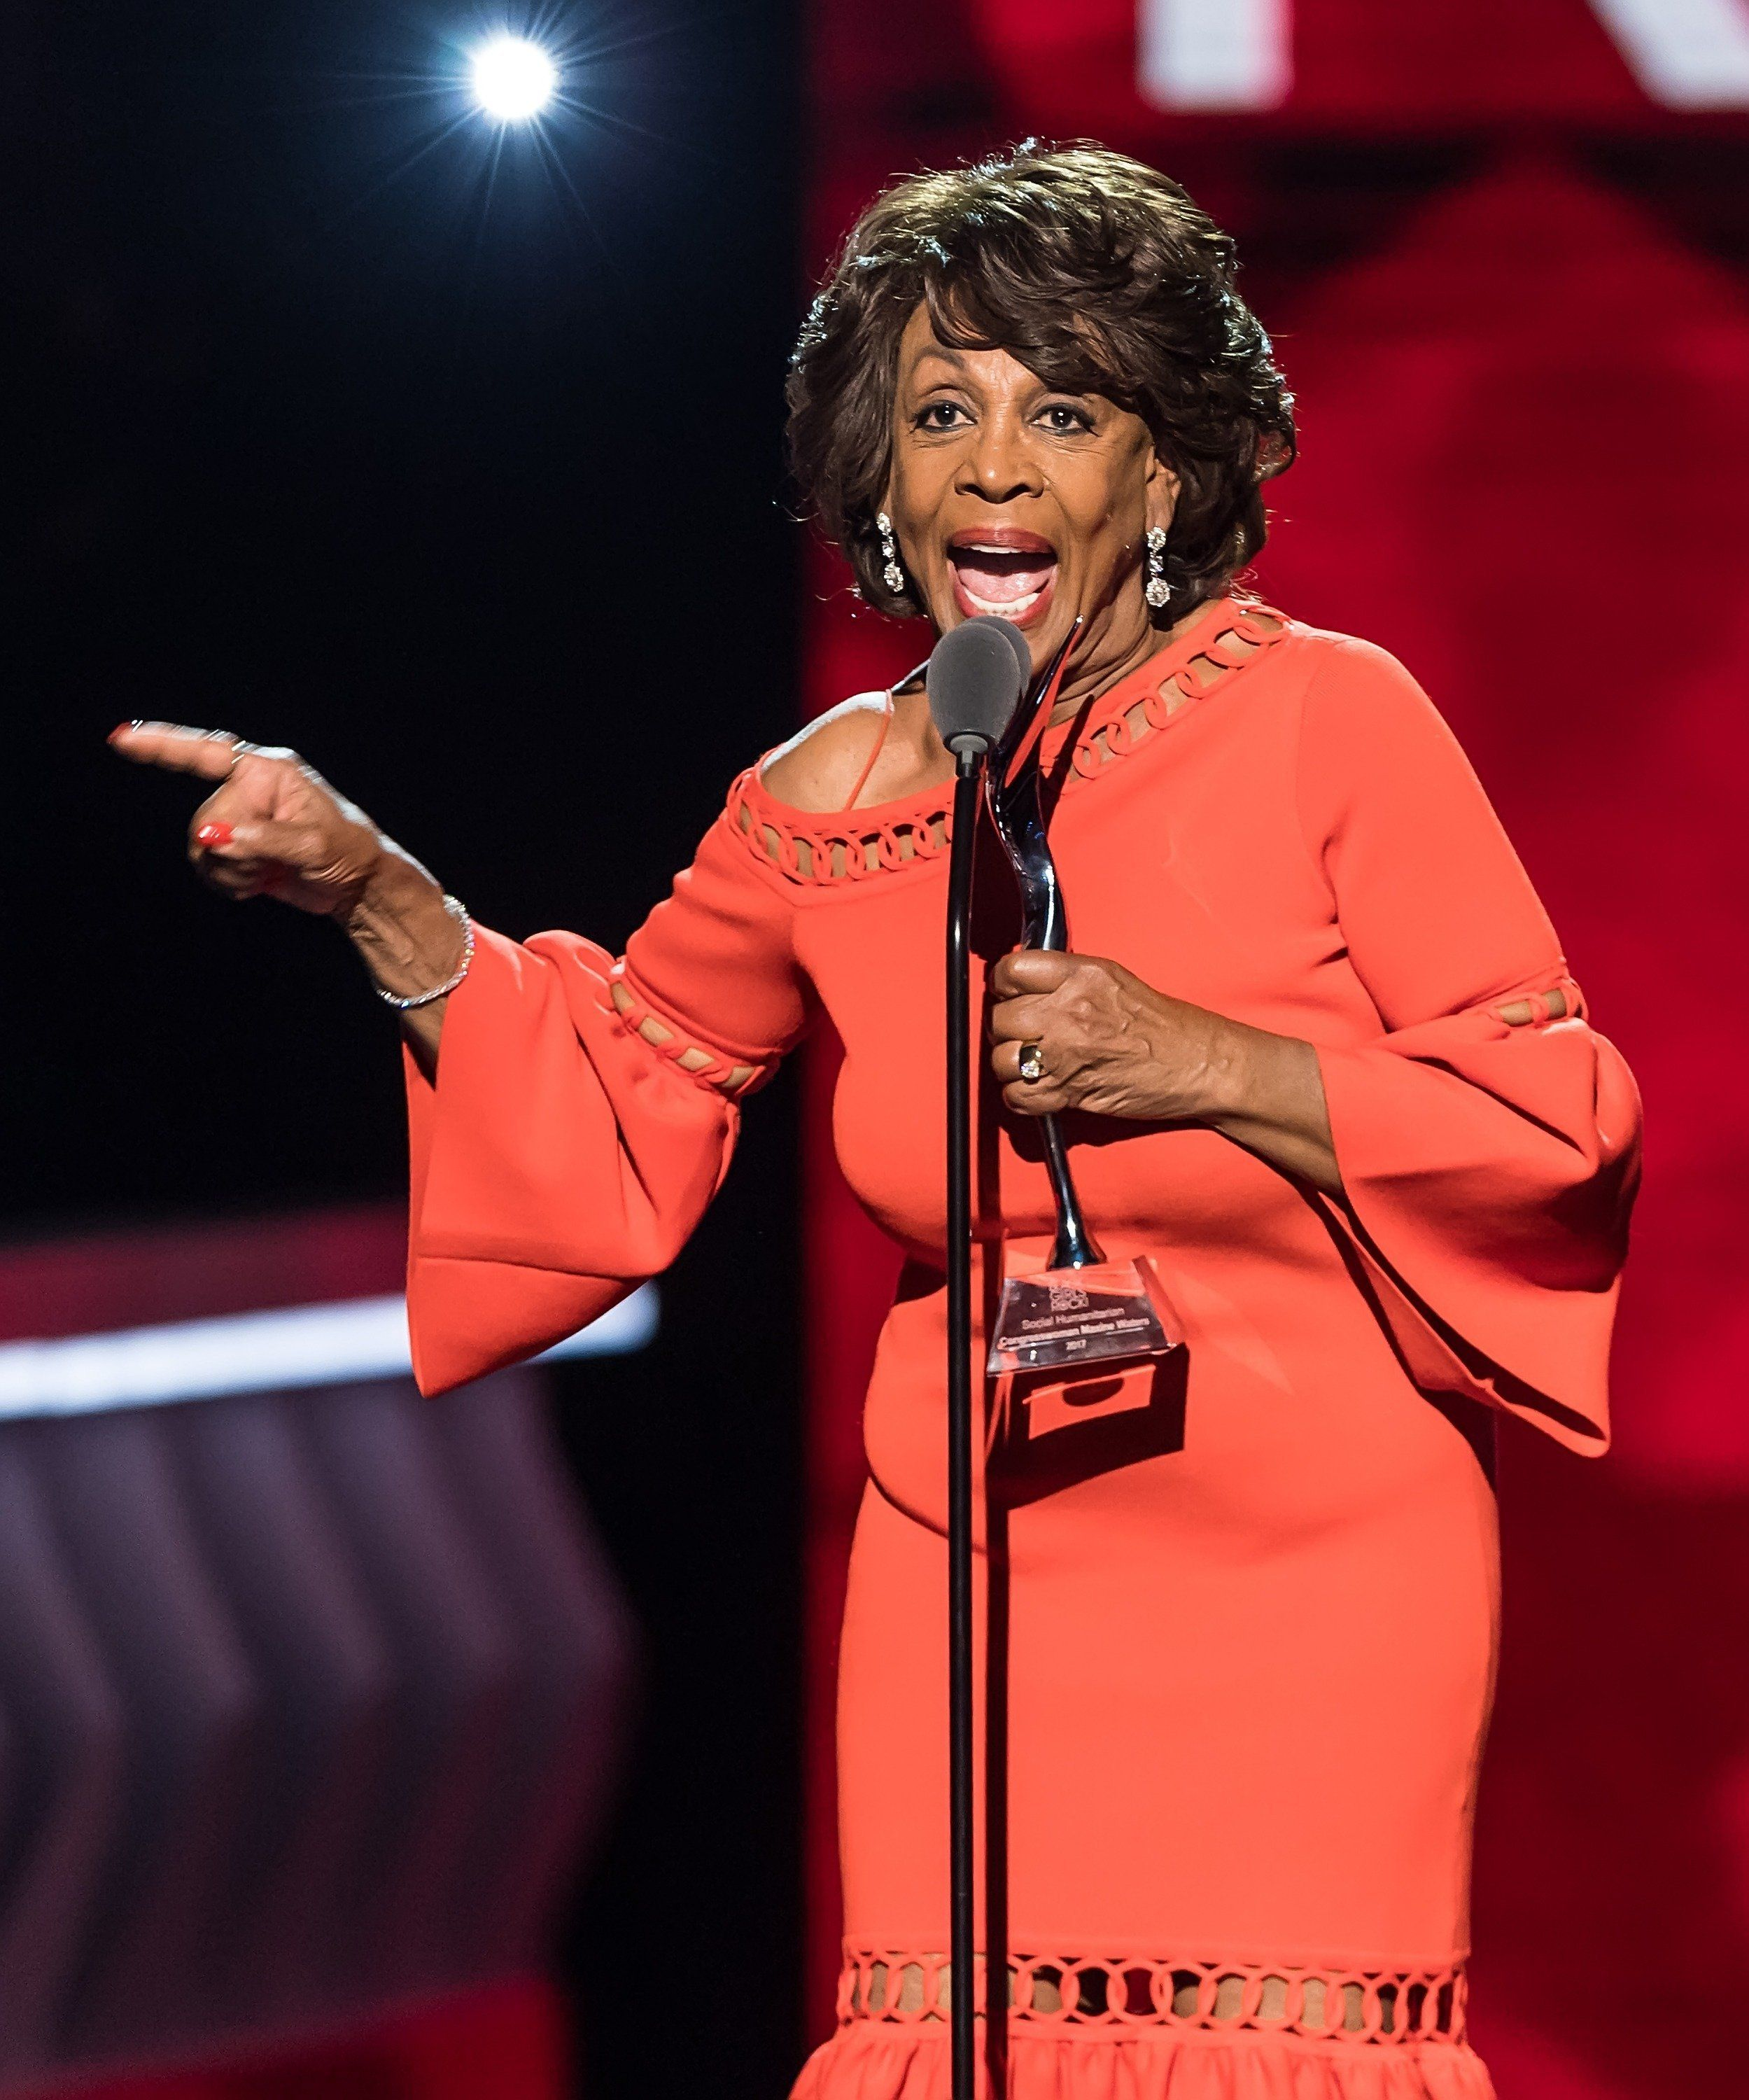 NEWARK, NJ - AUGUST 05:  U.S. Representative for California's 43rd congressional district Maxine Waters  accepts her award onstage during Black Girls Rock! 2017 at New Jersey Performing Arts Center on August 5, 2017 in Newark, New Jersey.  (Photo by Gilbert Carrasquillo/FilmMagic)